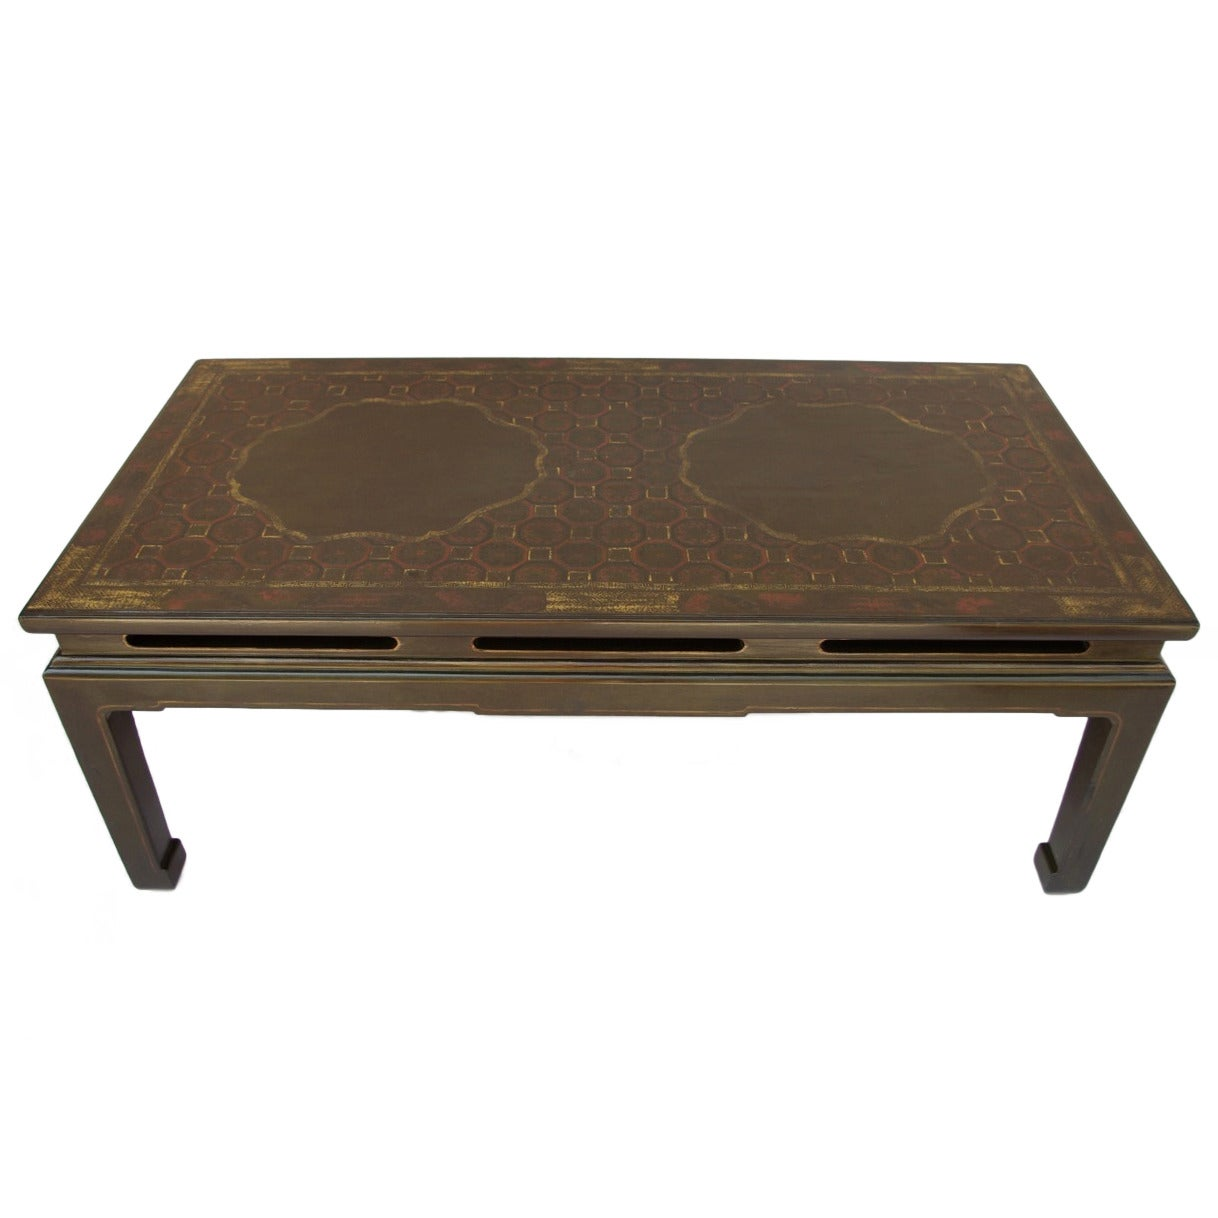 Unusual Olive Green Chinese Lacquered Coffee Table 1950 For Sale At 1stdibs